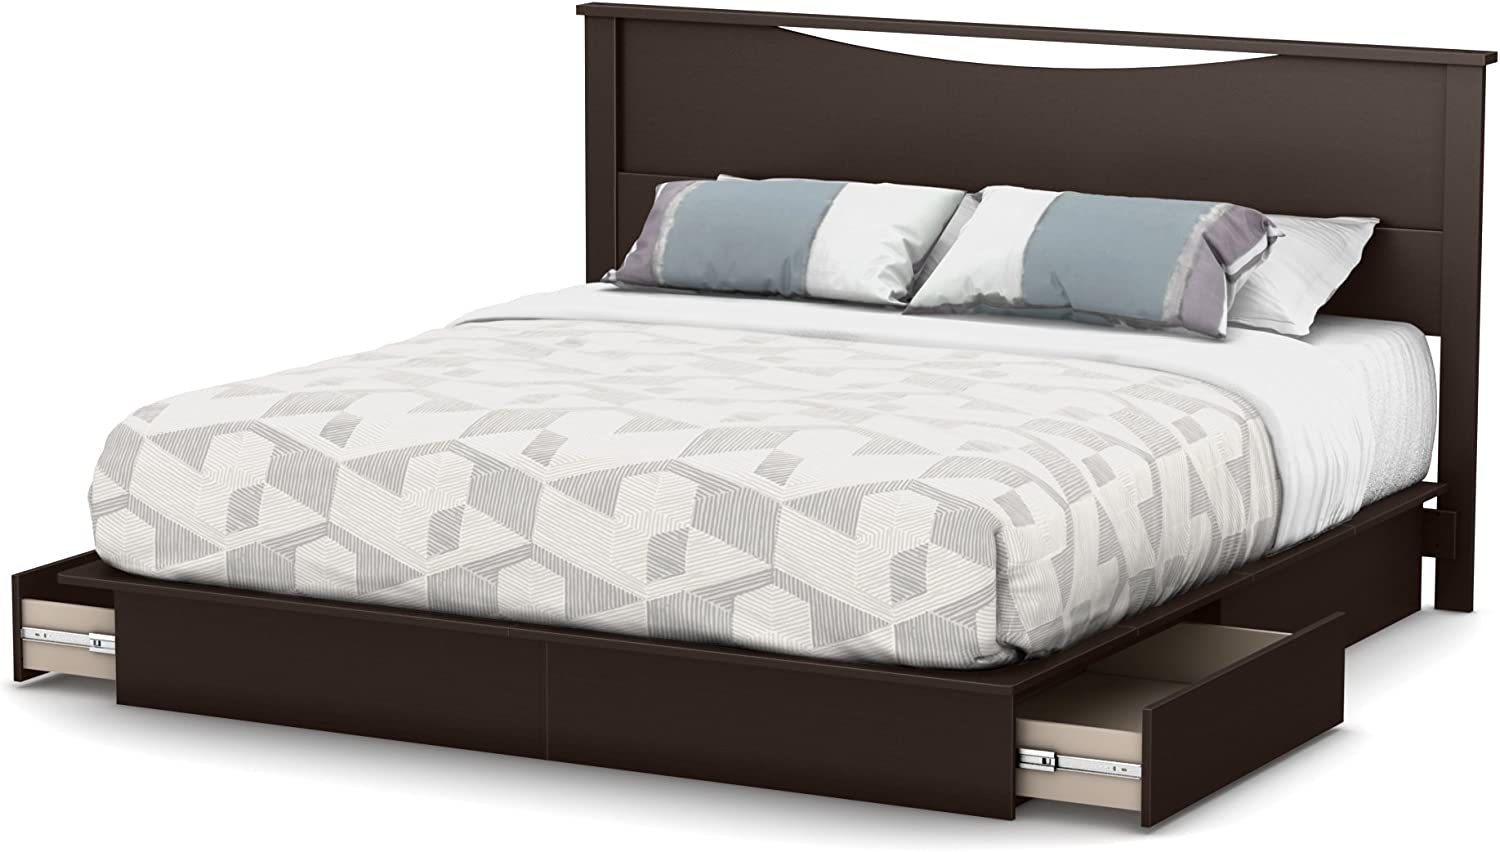 King Chocolate South Shore Step One Platform Bed with Drawers